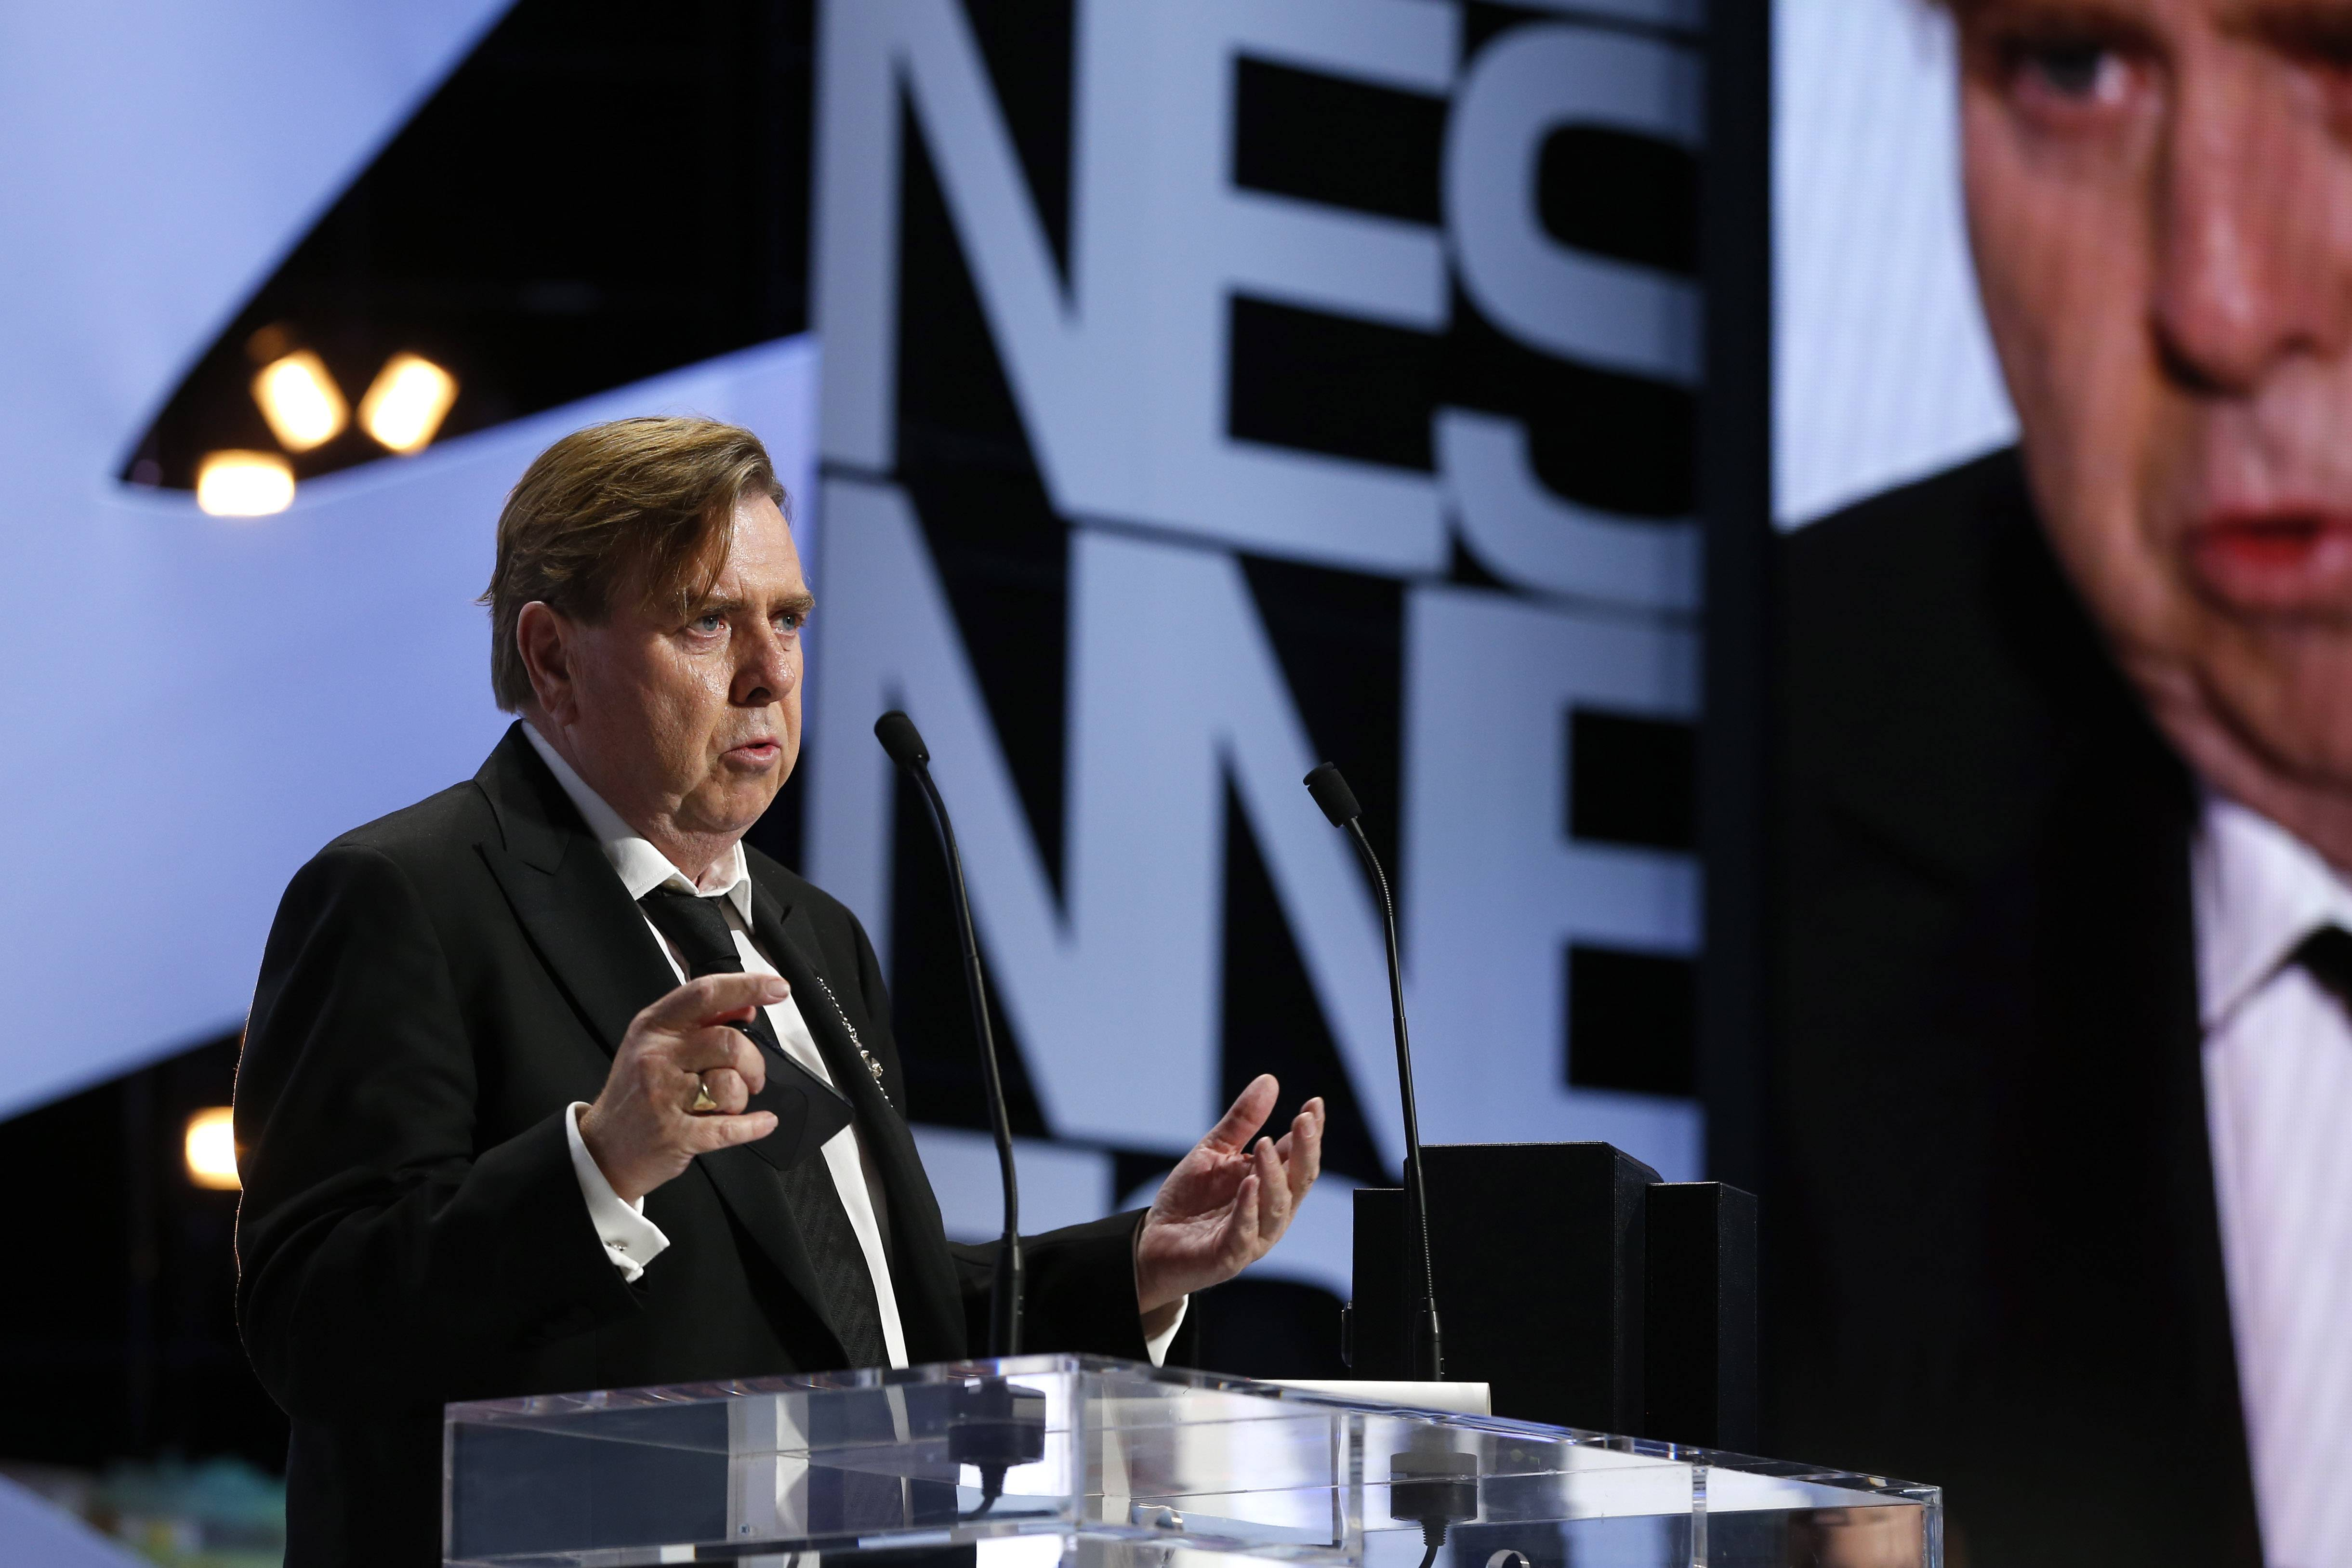 Timothy Spall delivers a speech after winning the Best Actor award for his role in the film Mr. Turner during the awards ceremony Saturday for the 67th annual Cannes Film Festival in southern France.